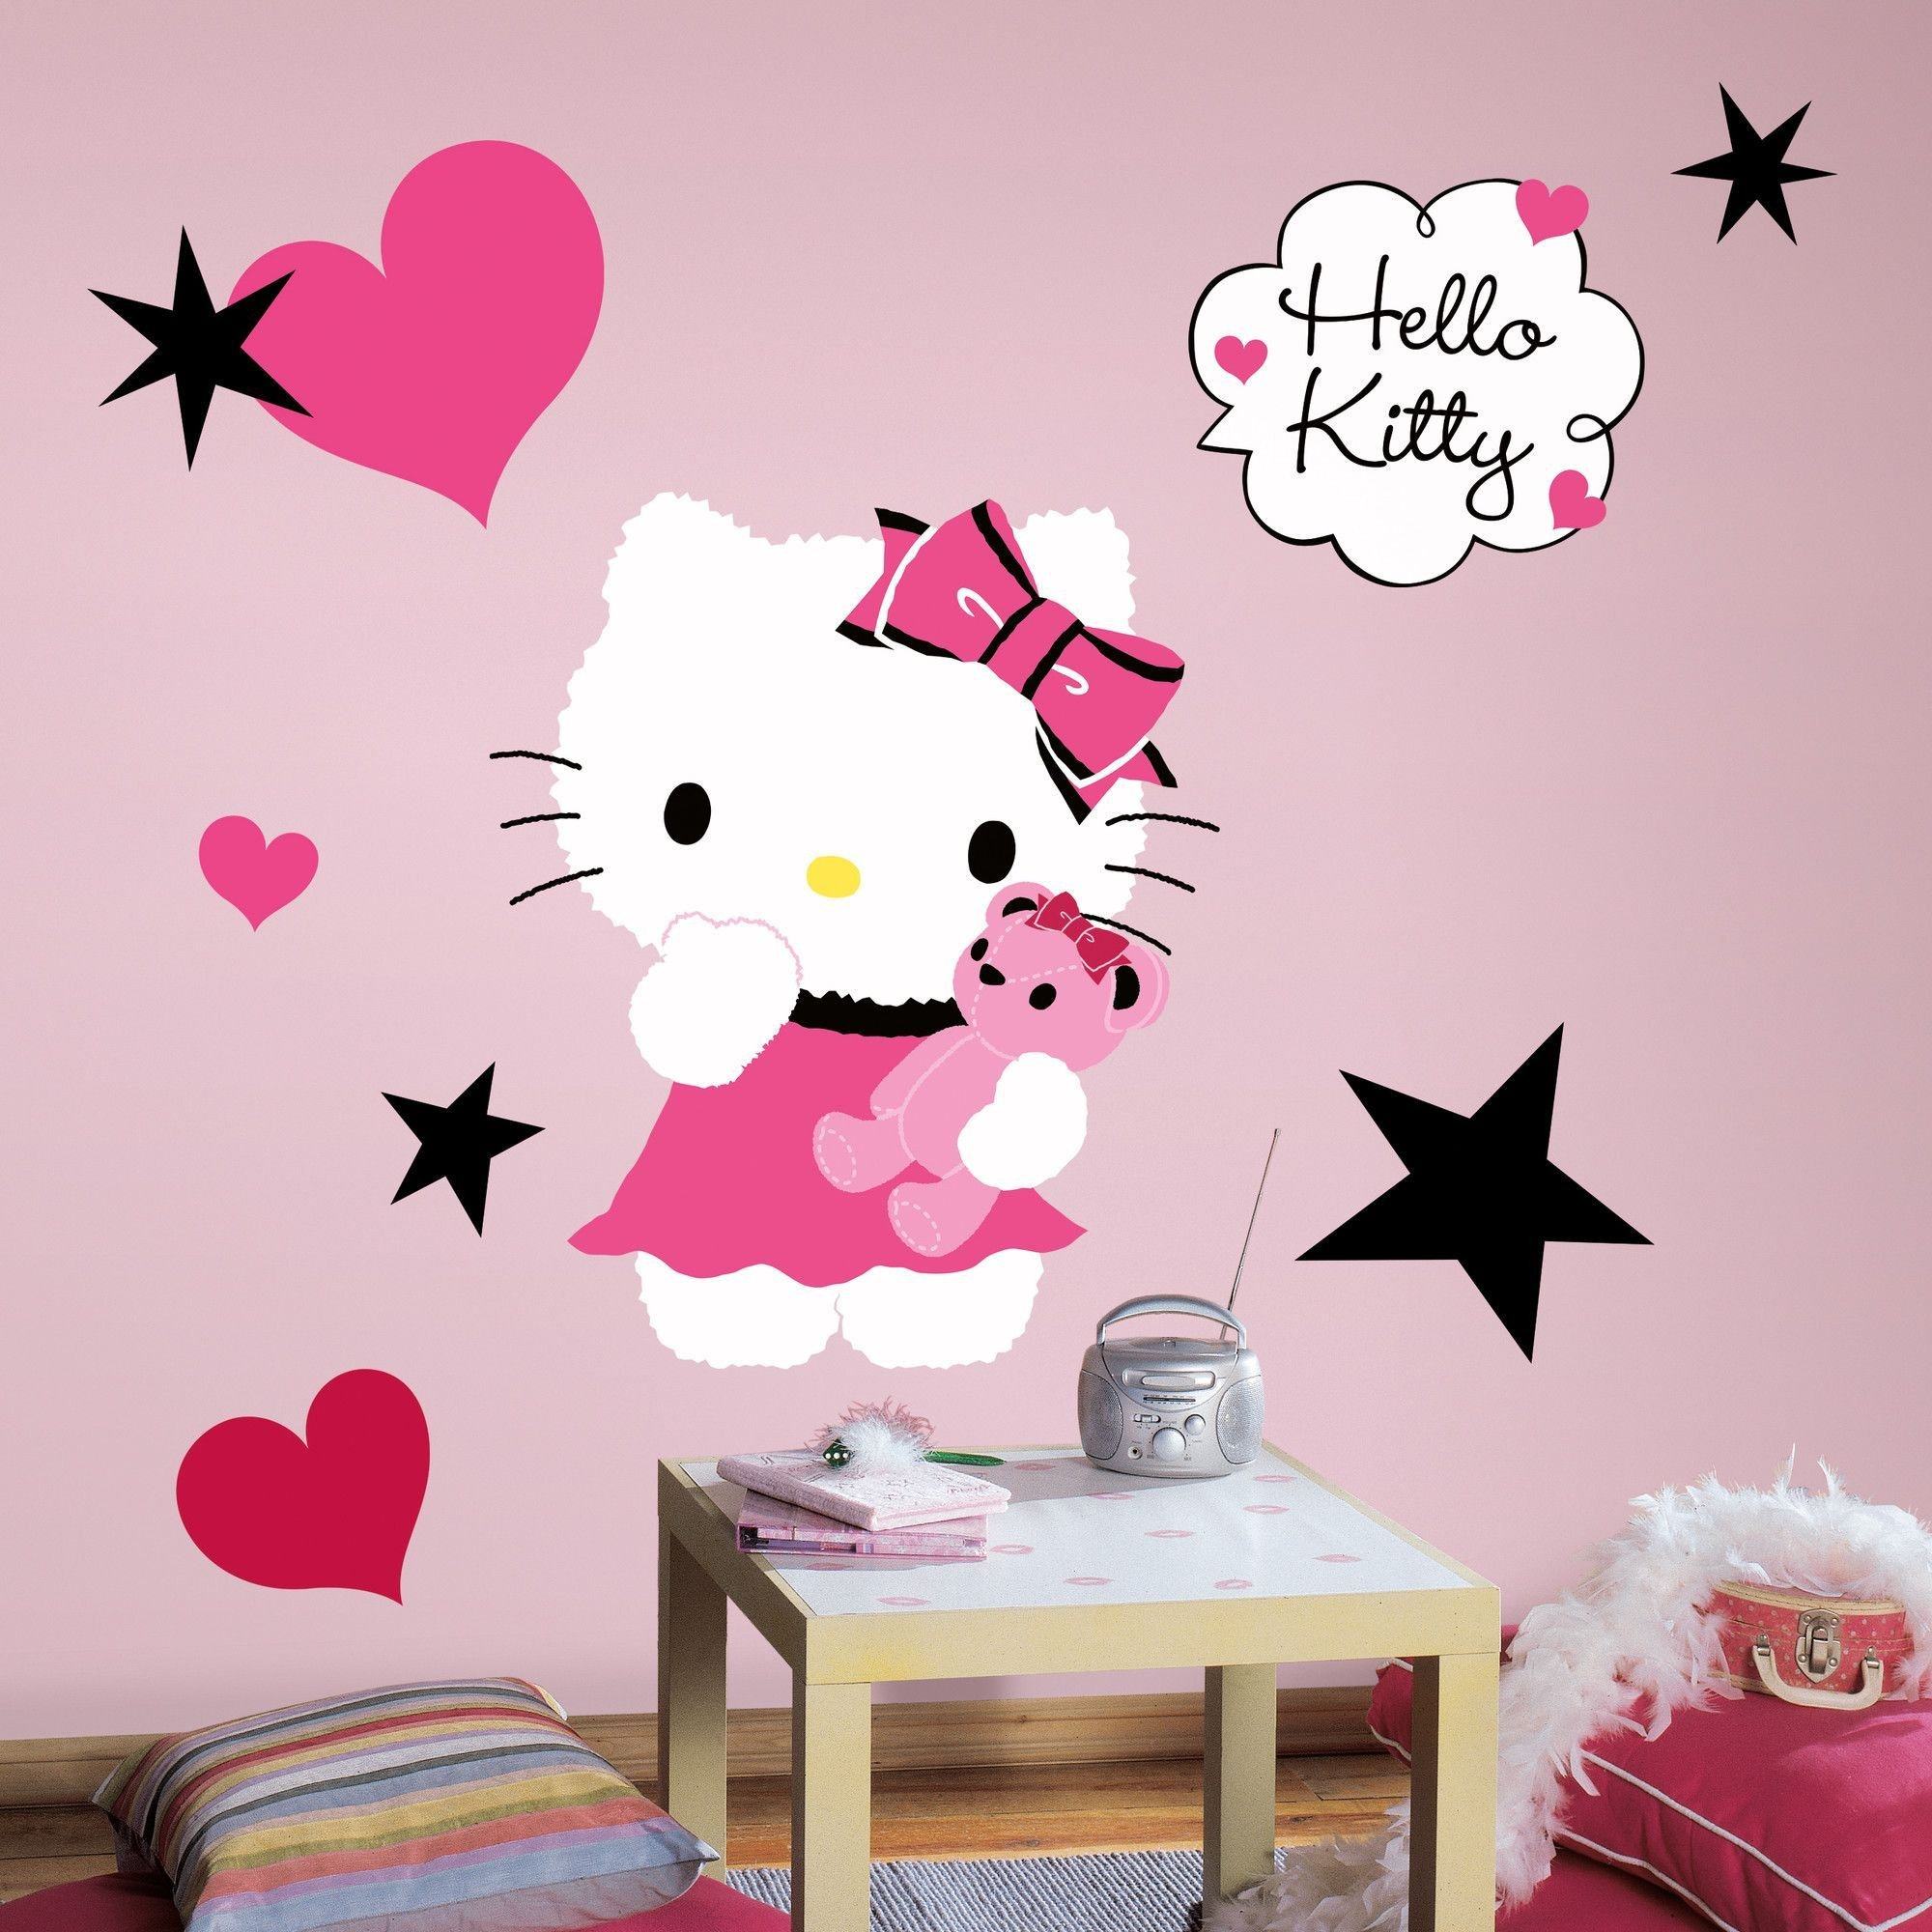 Hello Kitty Bedroom Set Awesome Popular Characters Hello Kitty Couture Giant Wall Decal